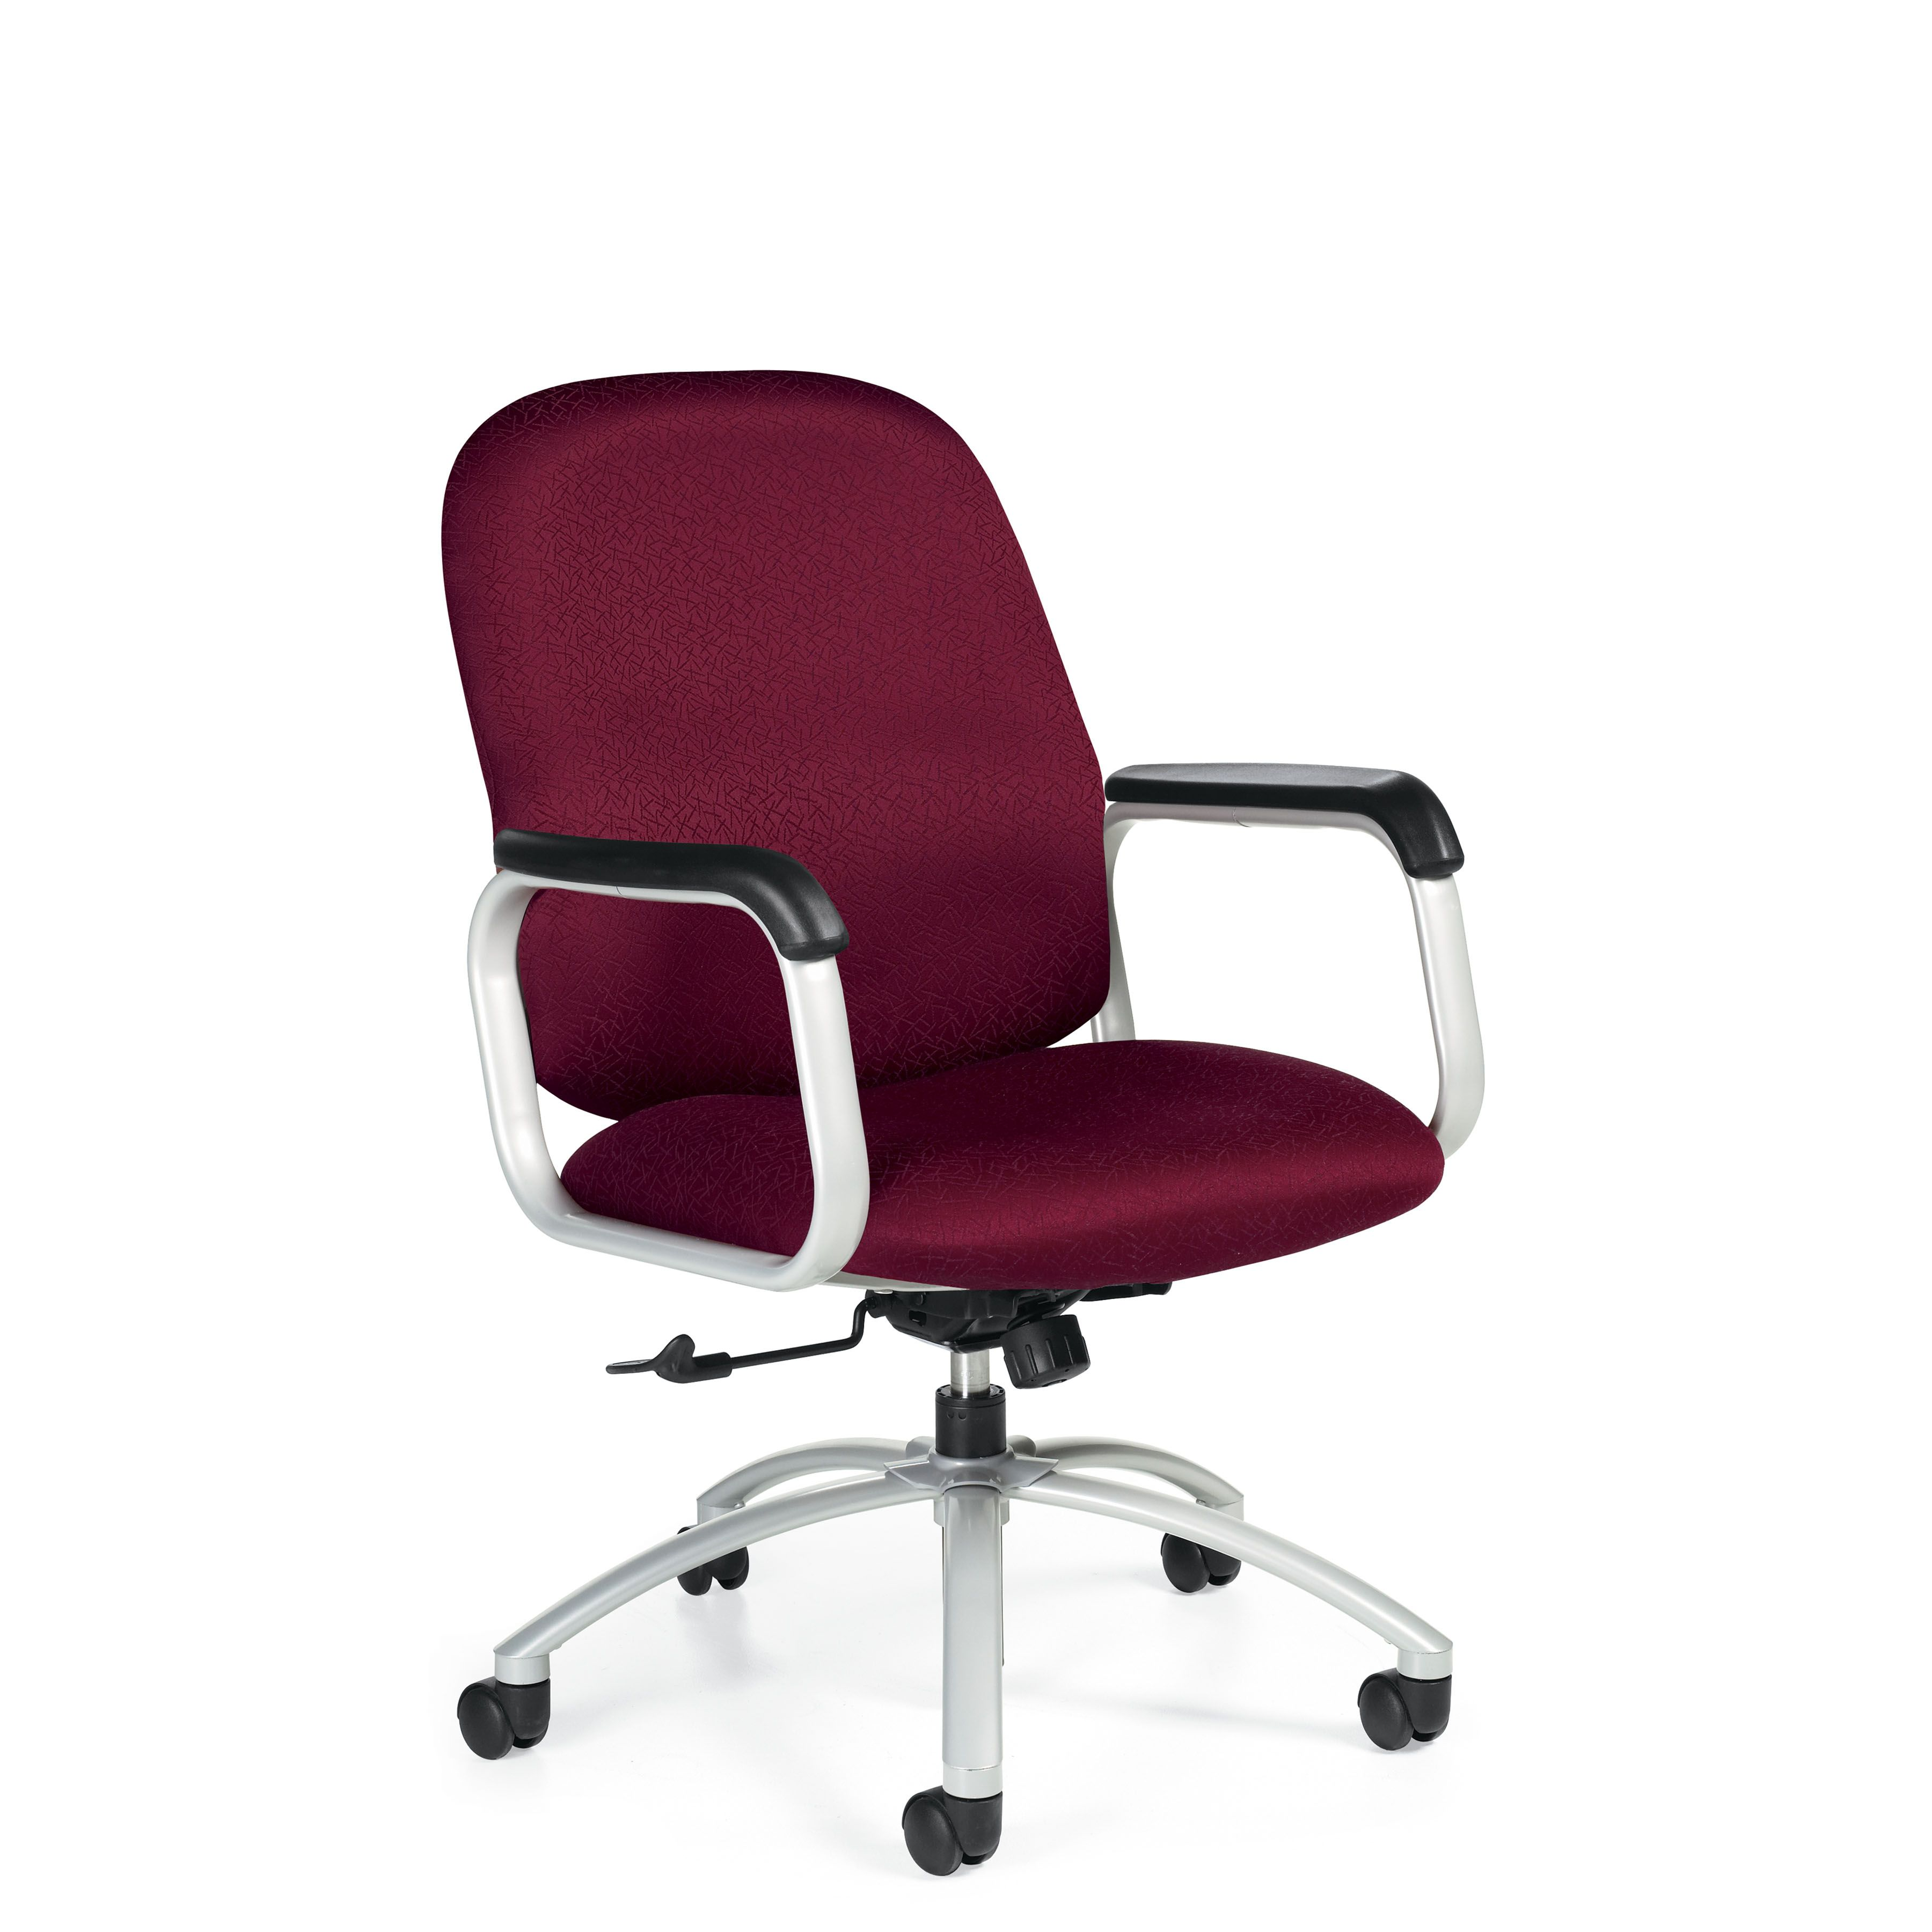 This Beautiful Red Chair By Max Is Ideal For Home Or Office